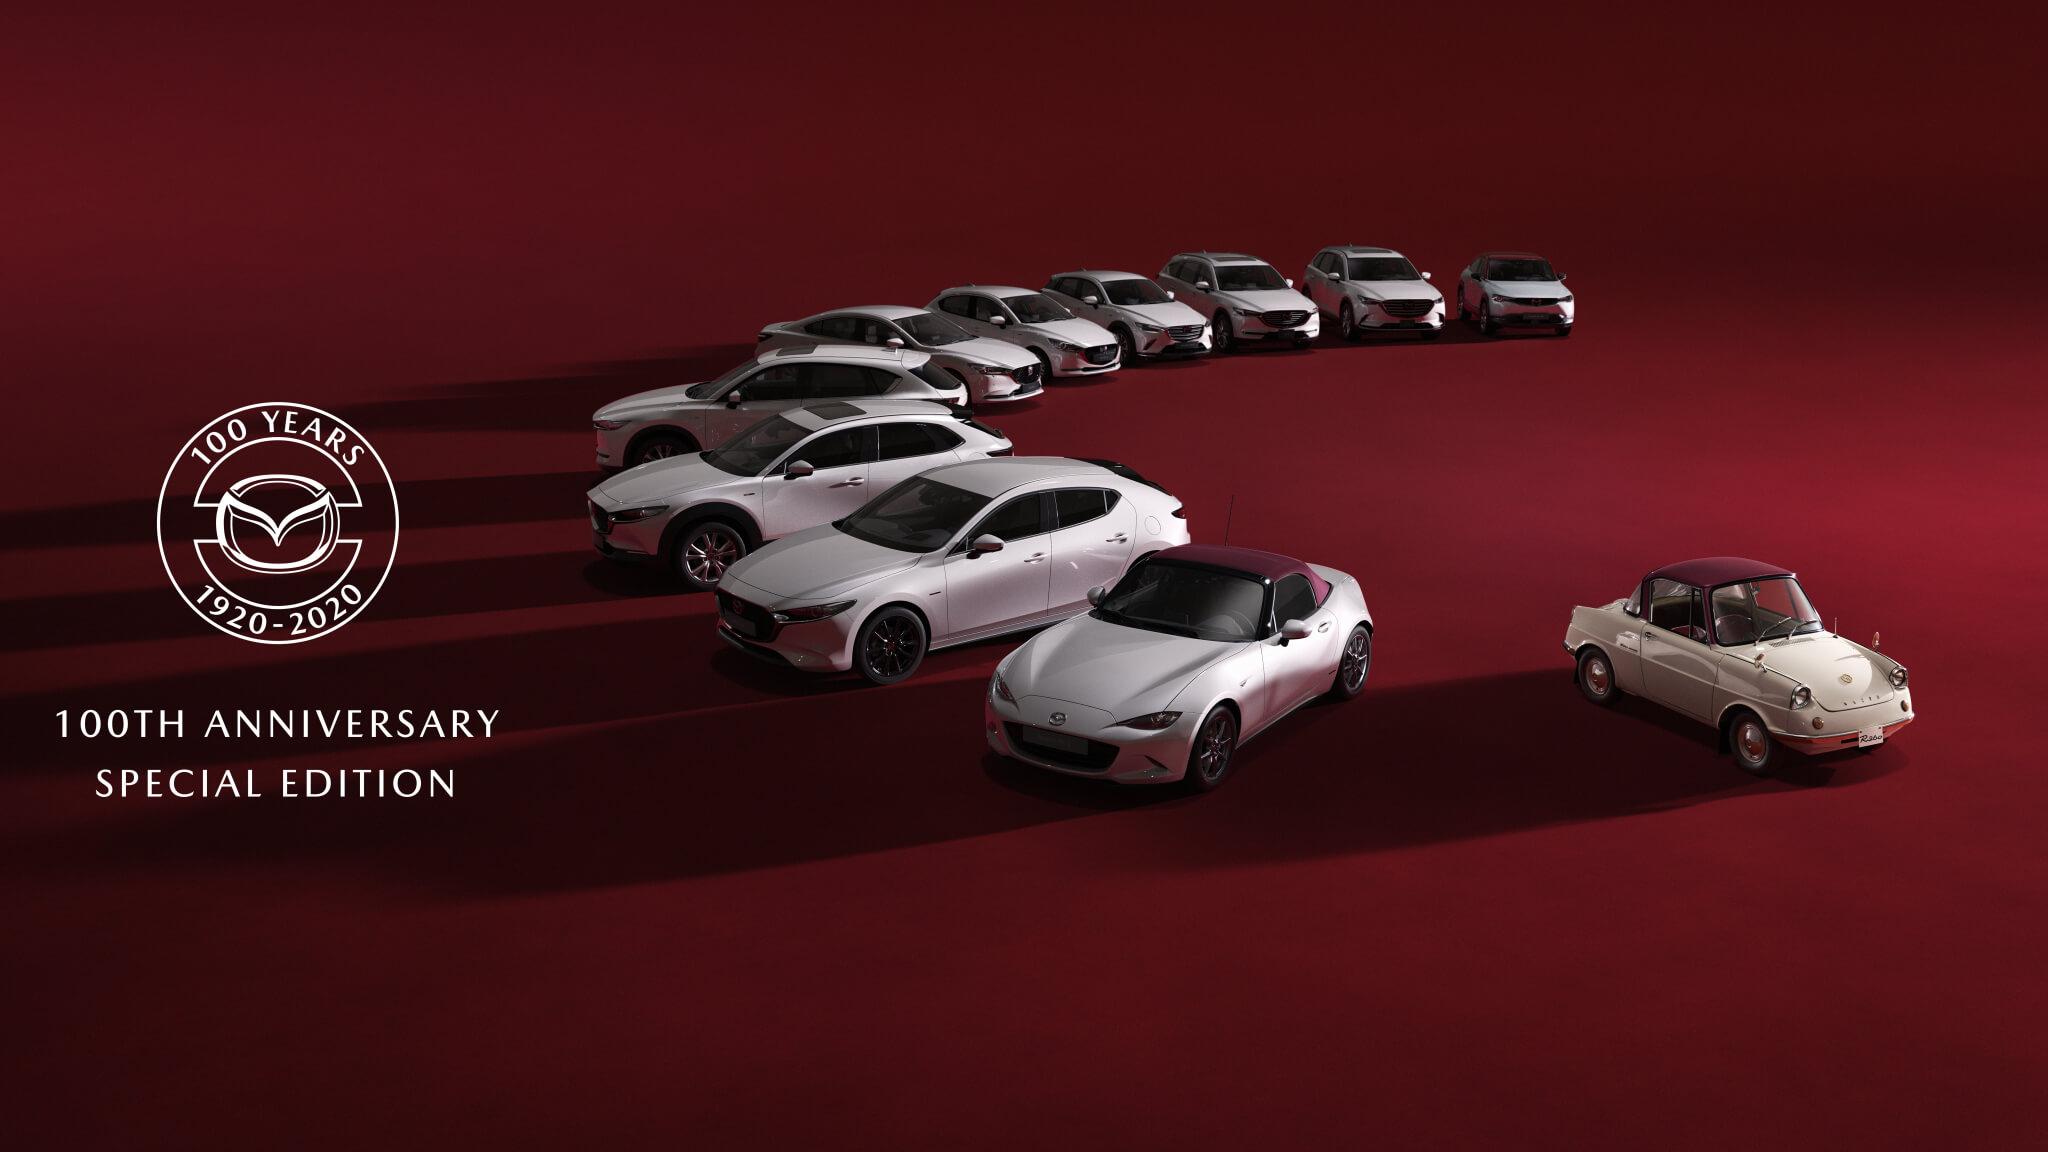 Mazda celebrates their 100th year anniversary with a run of Special Edition vehicles.